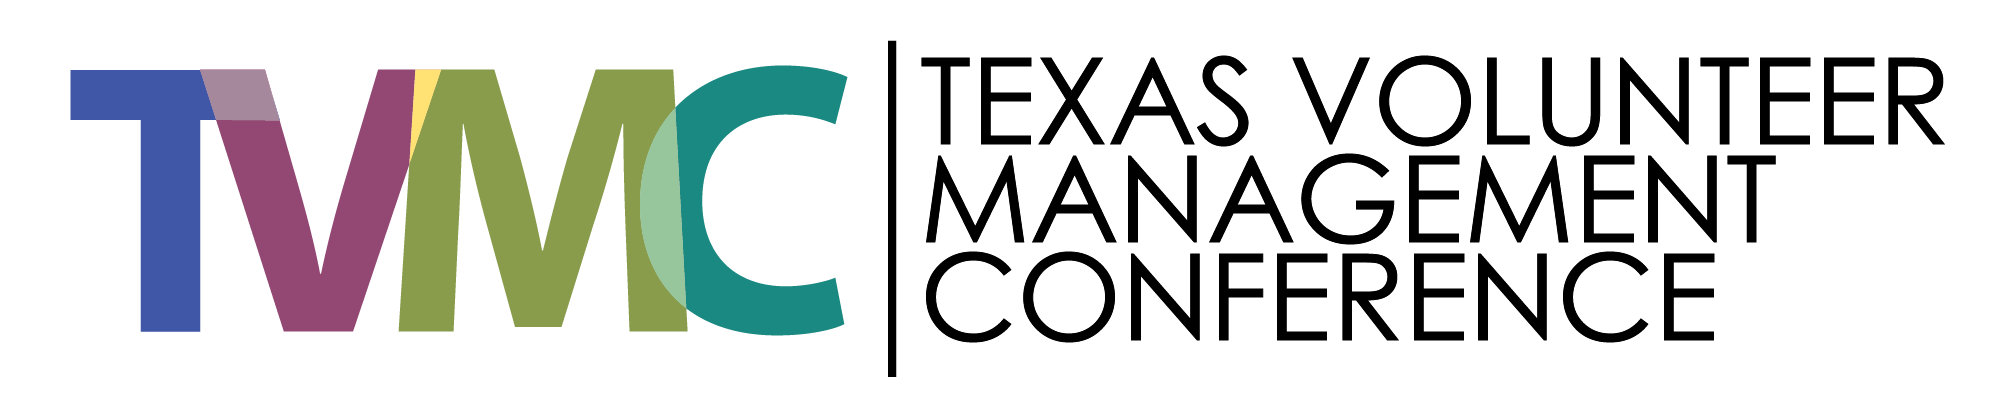 Texas Volunteer Management Conference